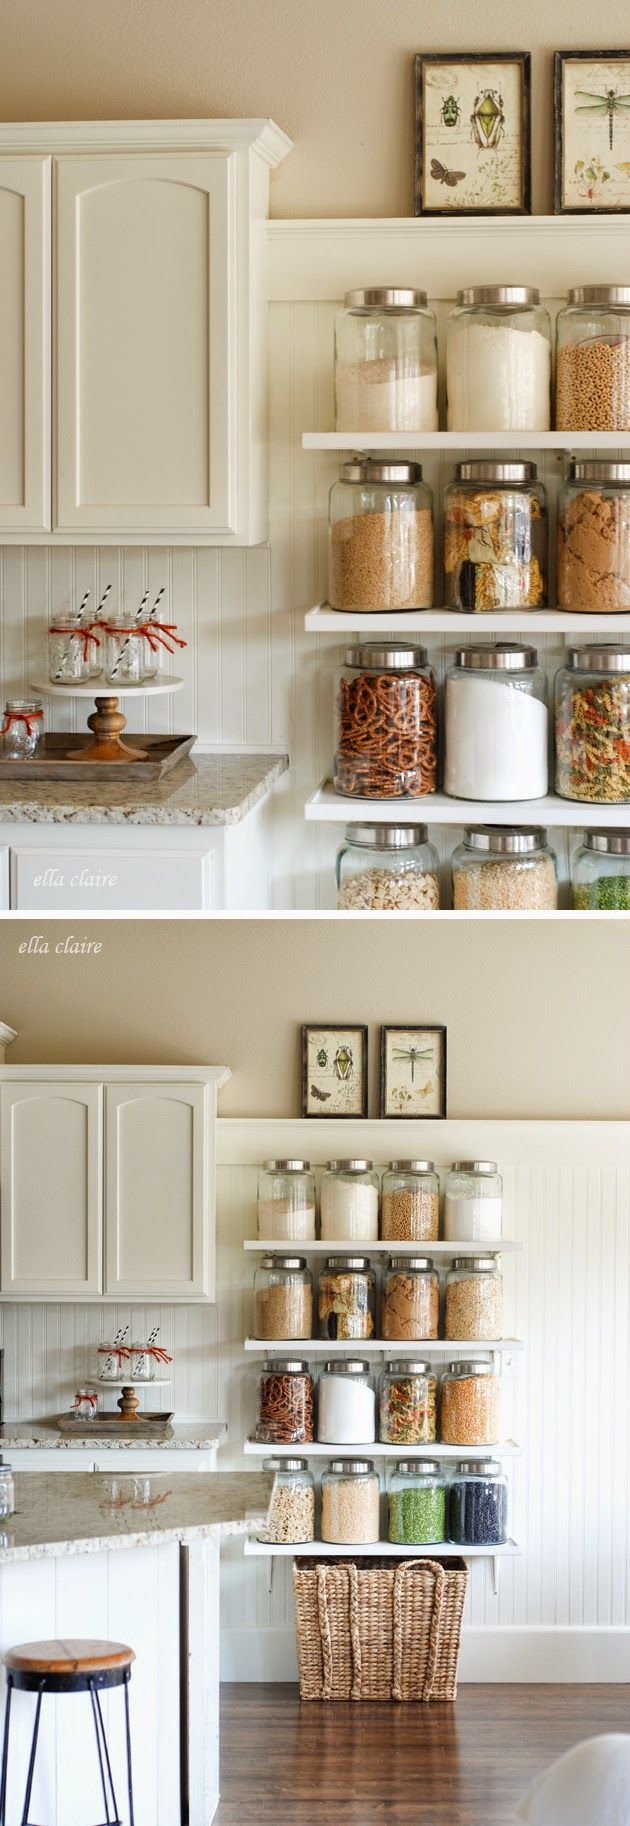 Diy country store kitchen shelves glass canisters for Country kitchen pantry ideas